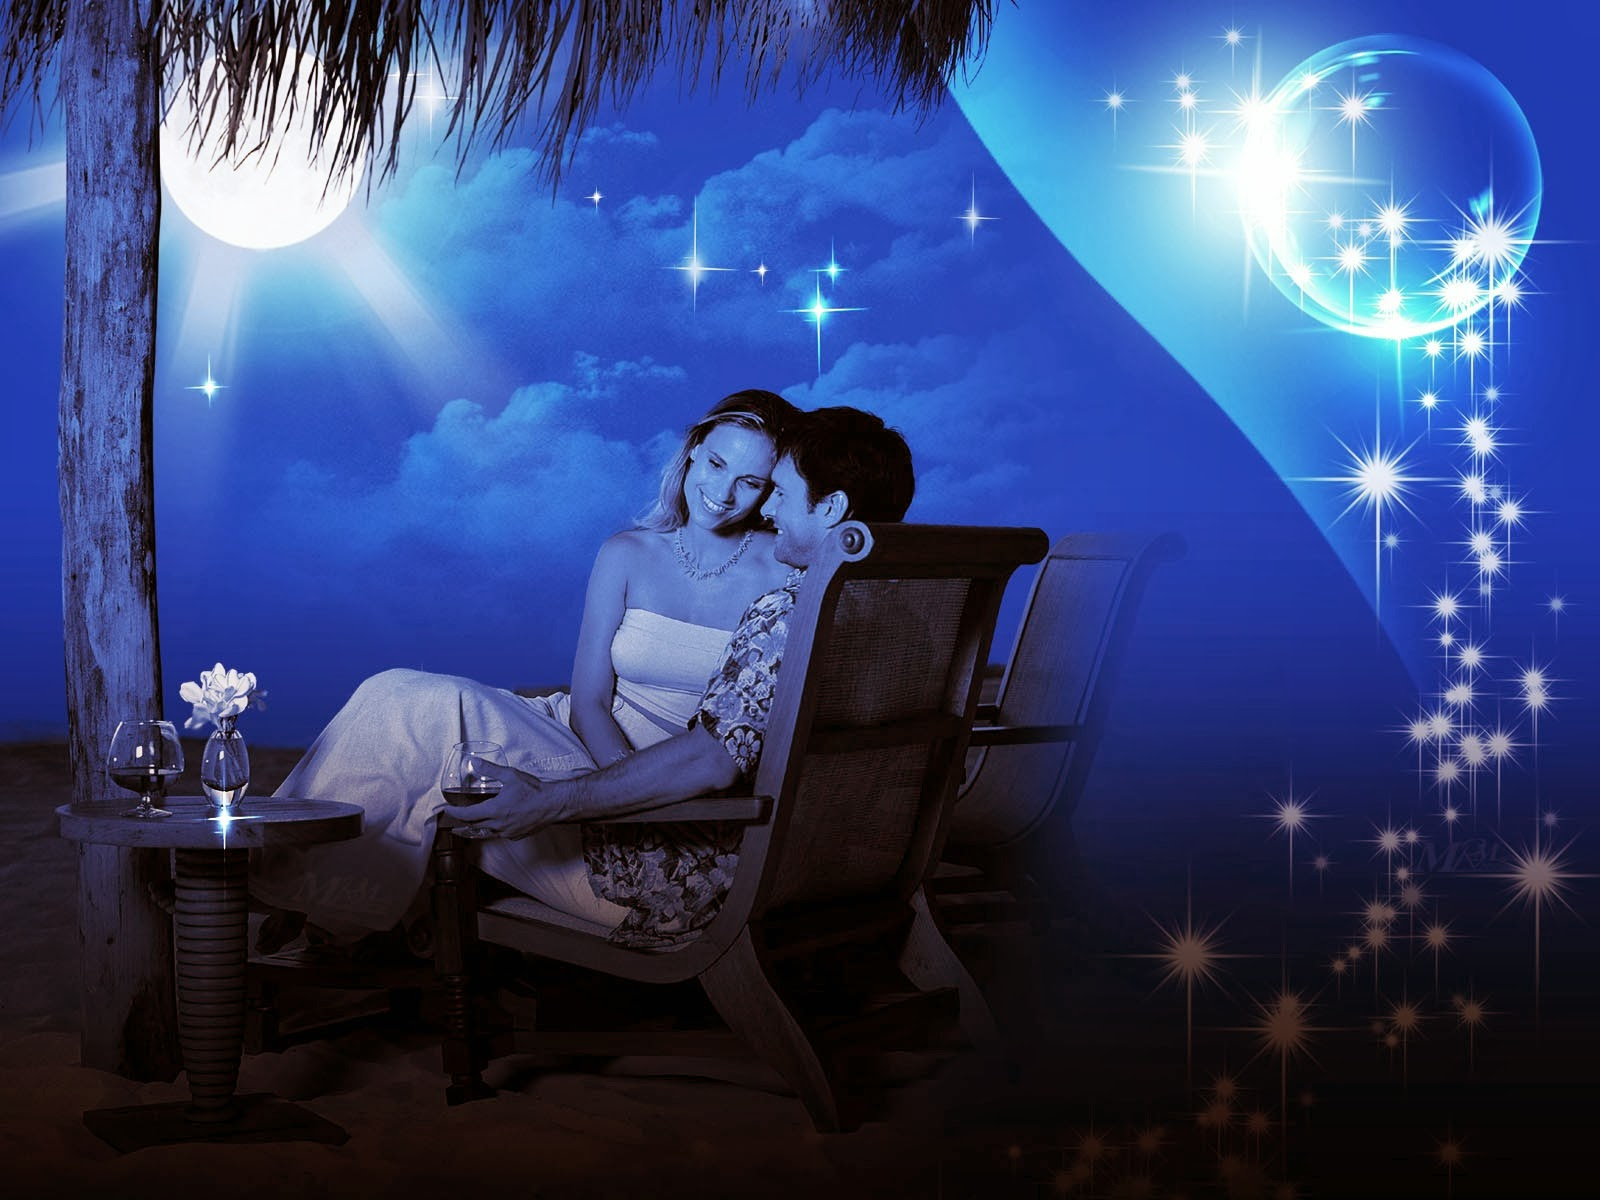 Lovers-Dinner-at-moonlight-images.jpg